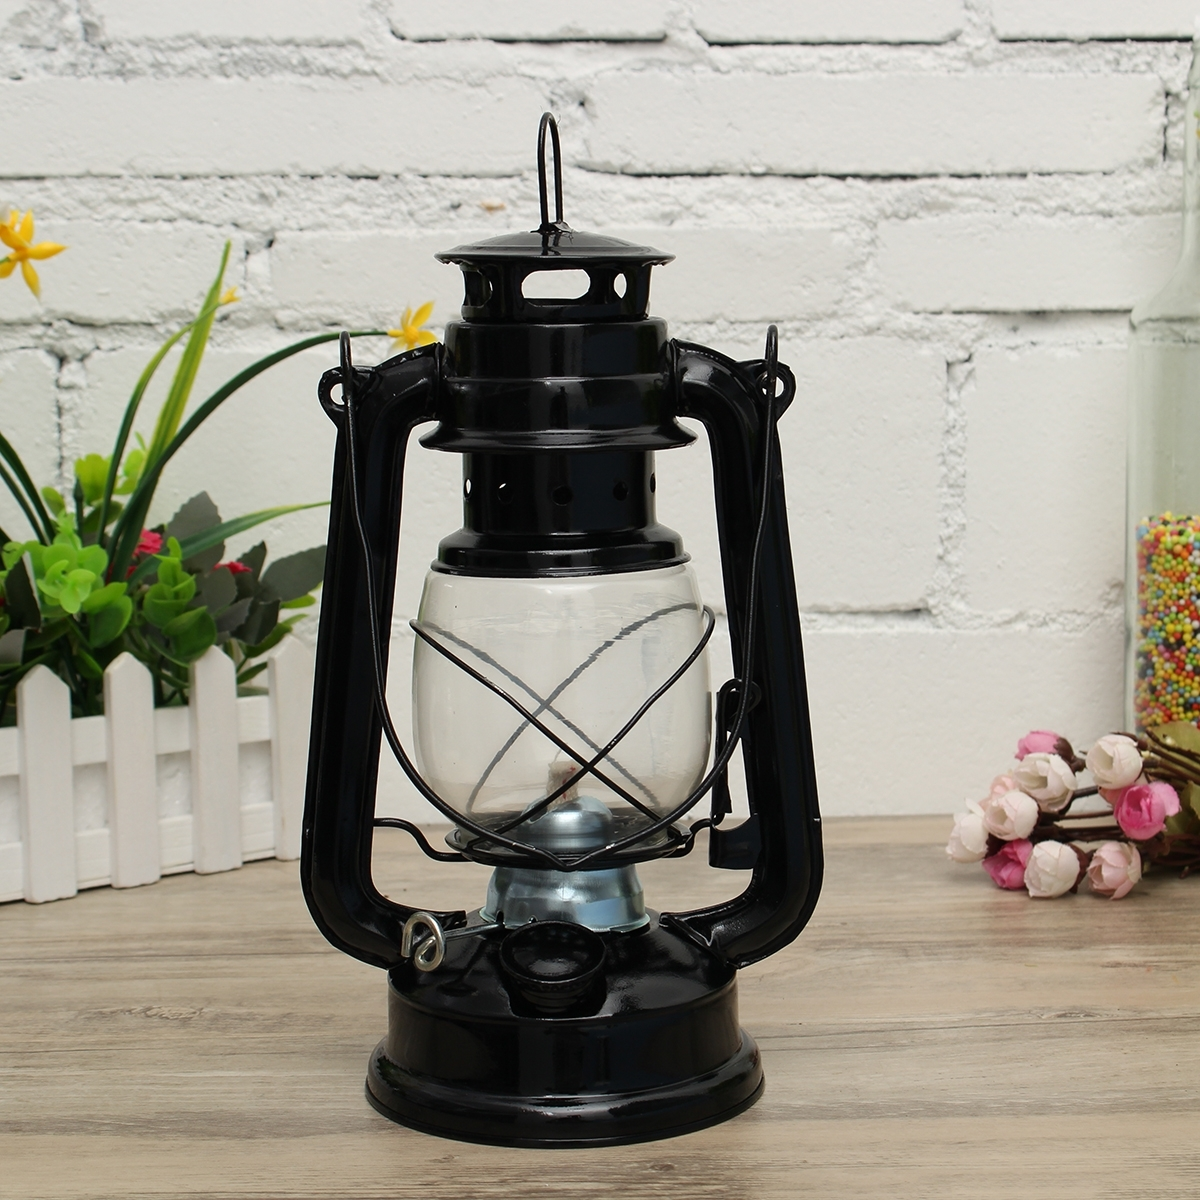 Fashionable Lamps & Lanterns – Ipree® Retro Oil Lantern Outdoor Garden Camp With Outdoor Hanging Oil Lanterns (View 7 of 20)